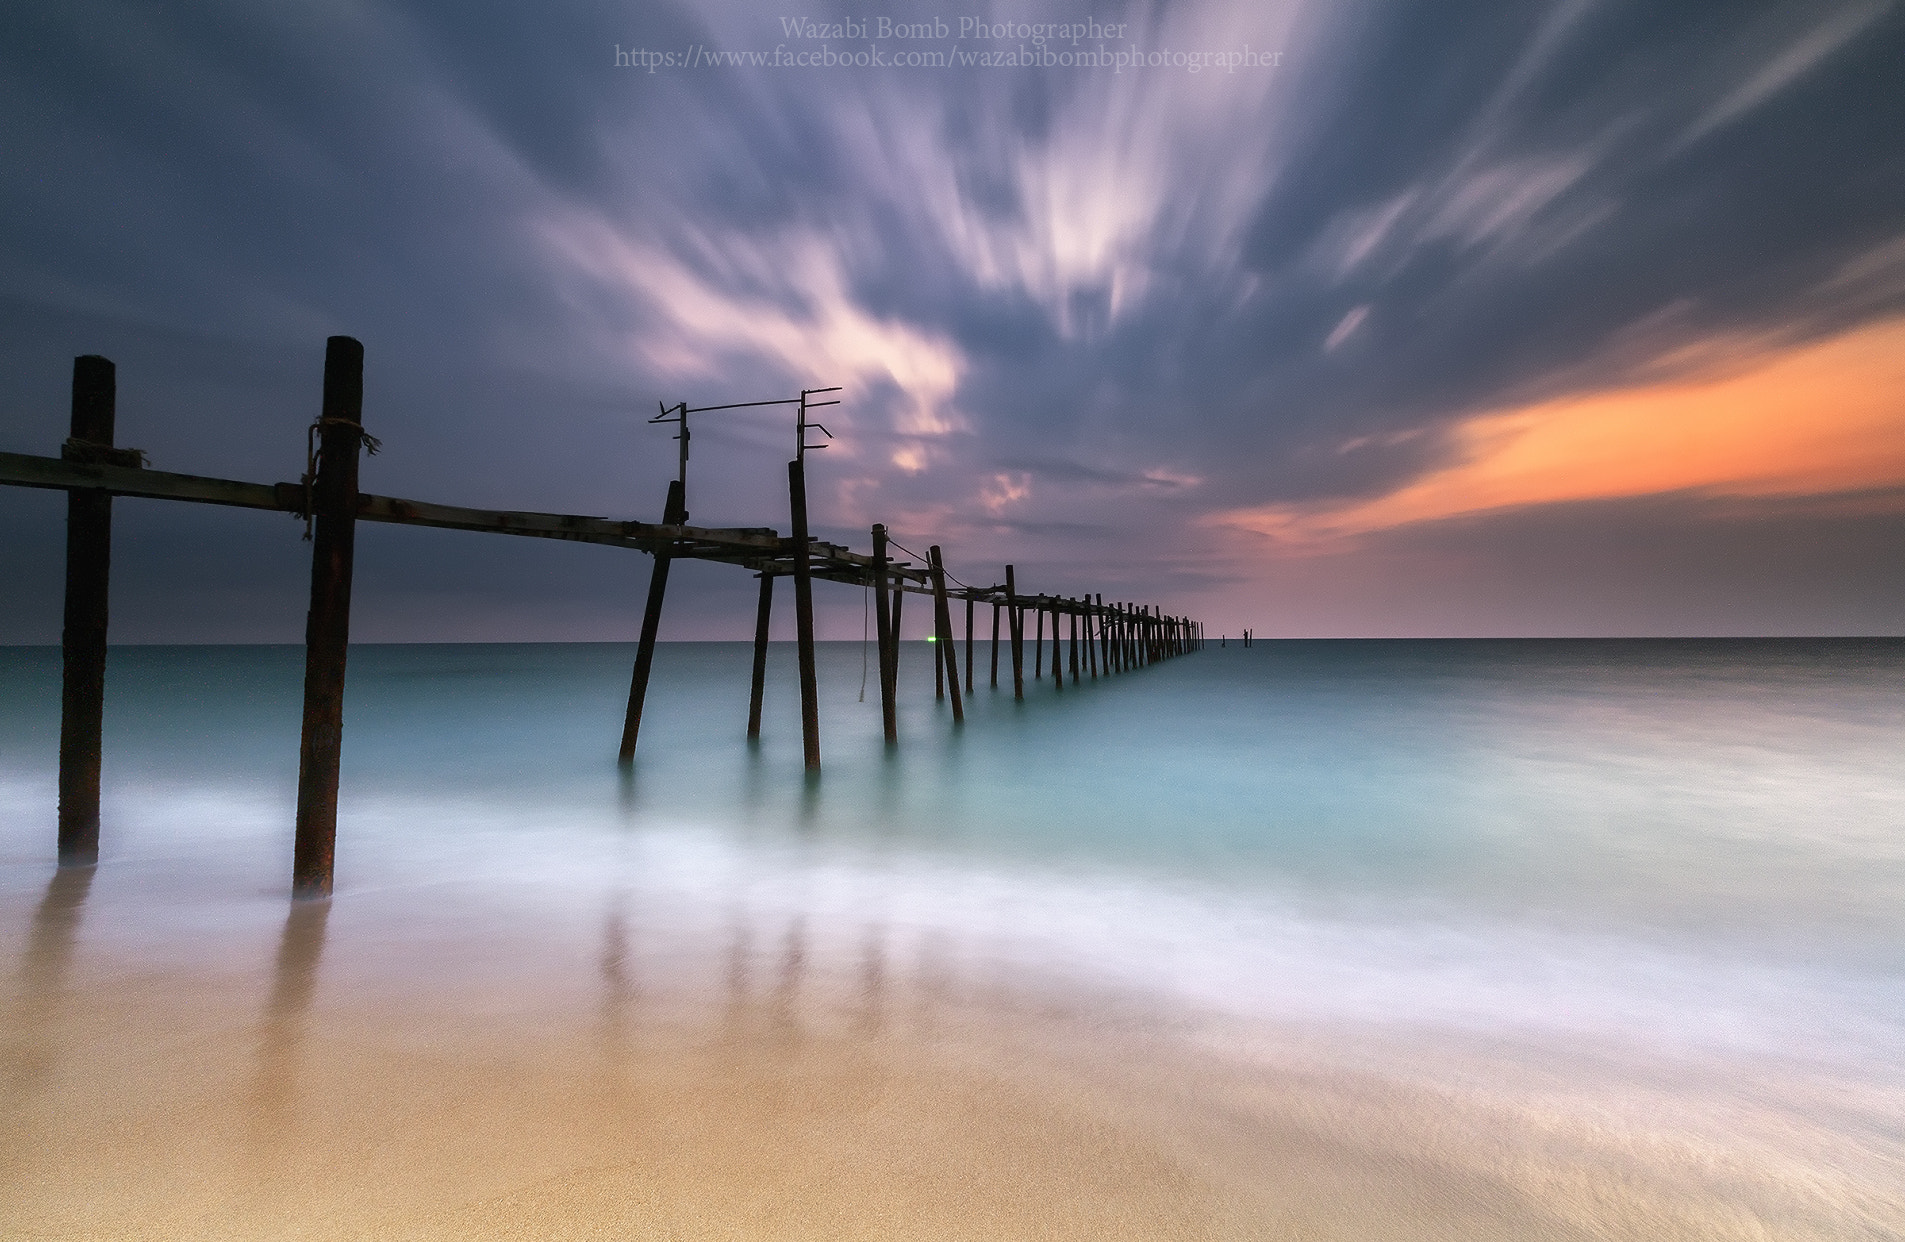 Photograph Long exposure by Wazabi Bomb  on 500px